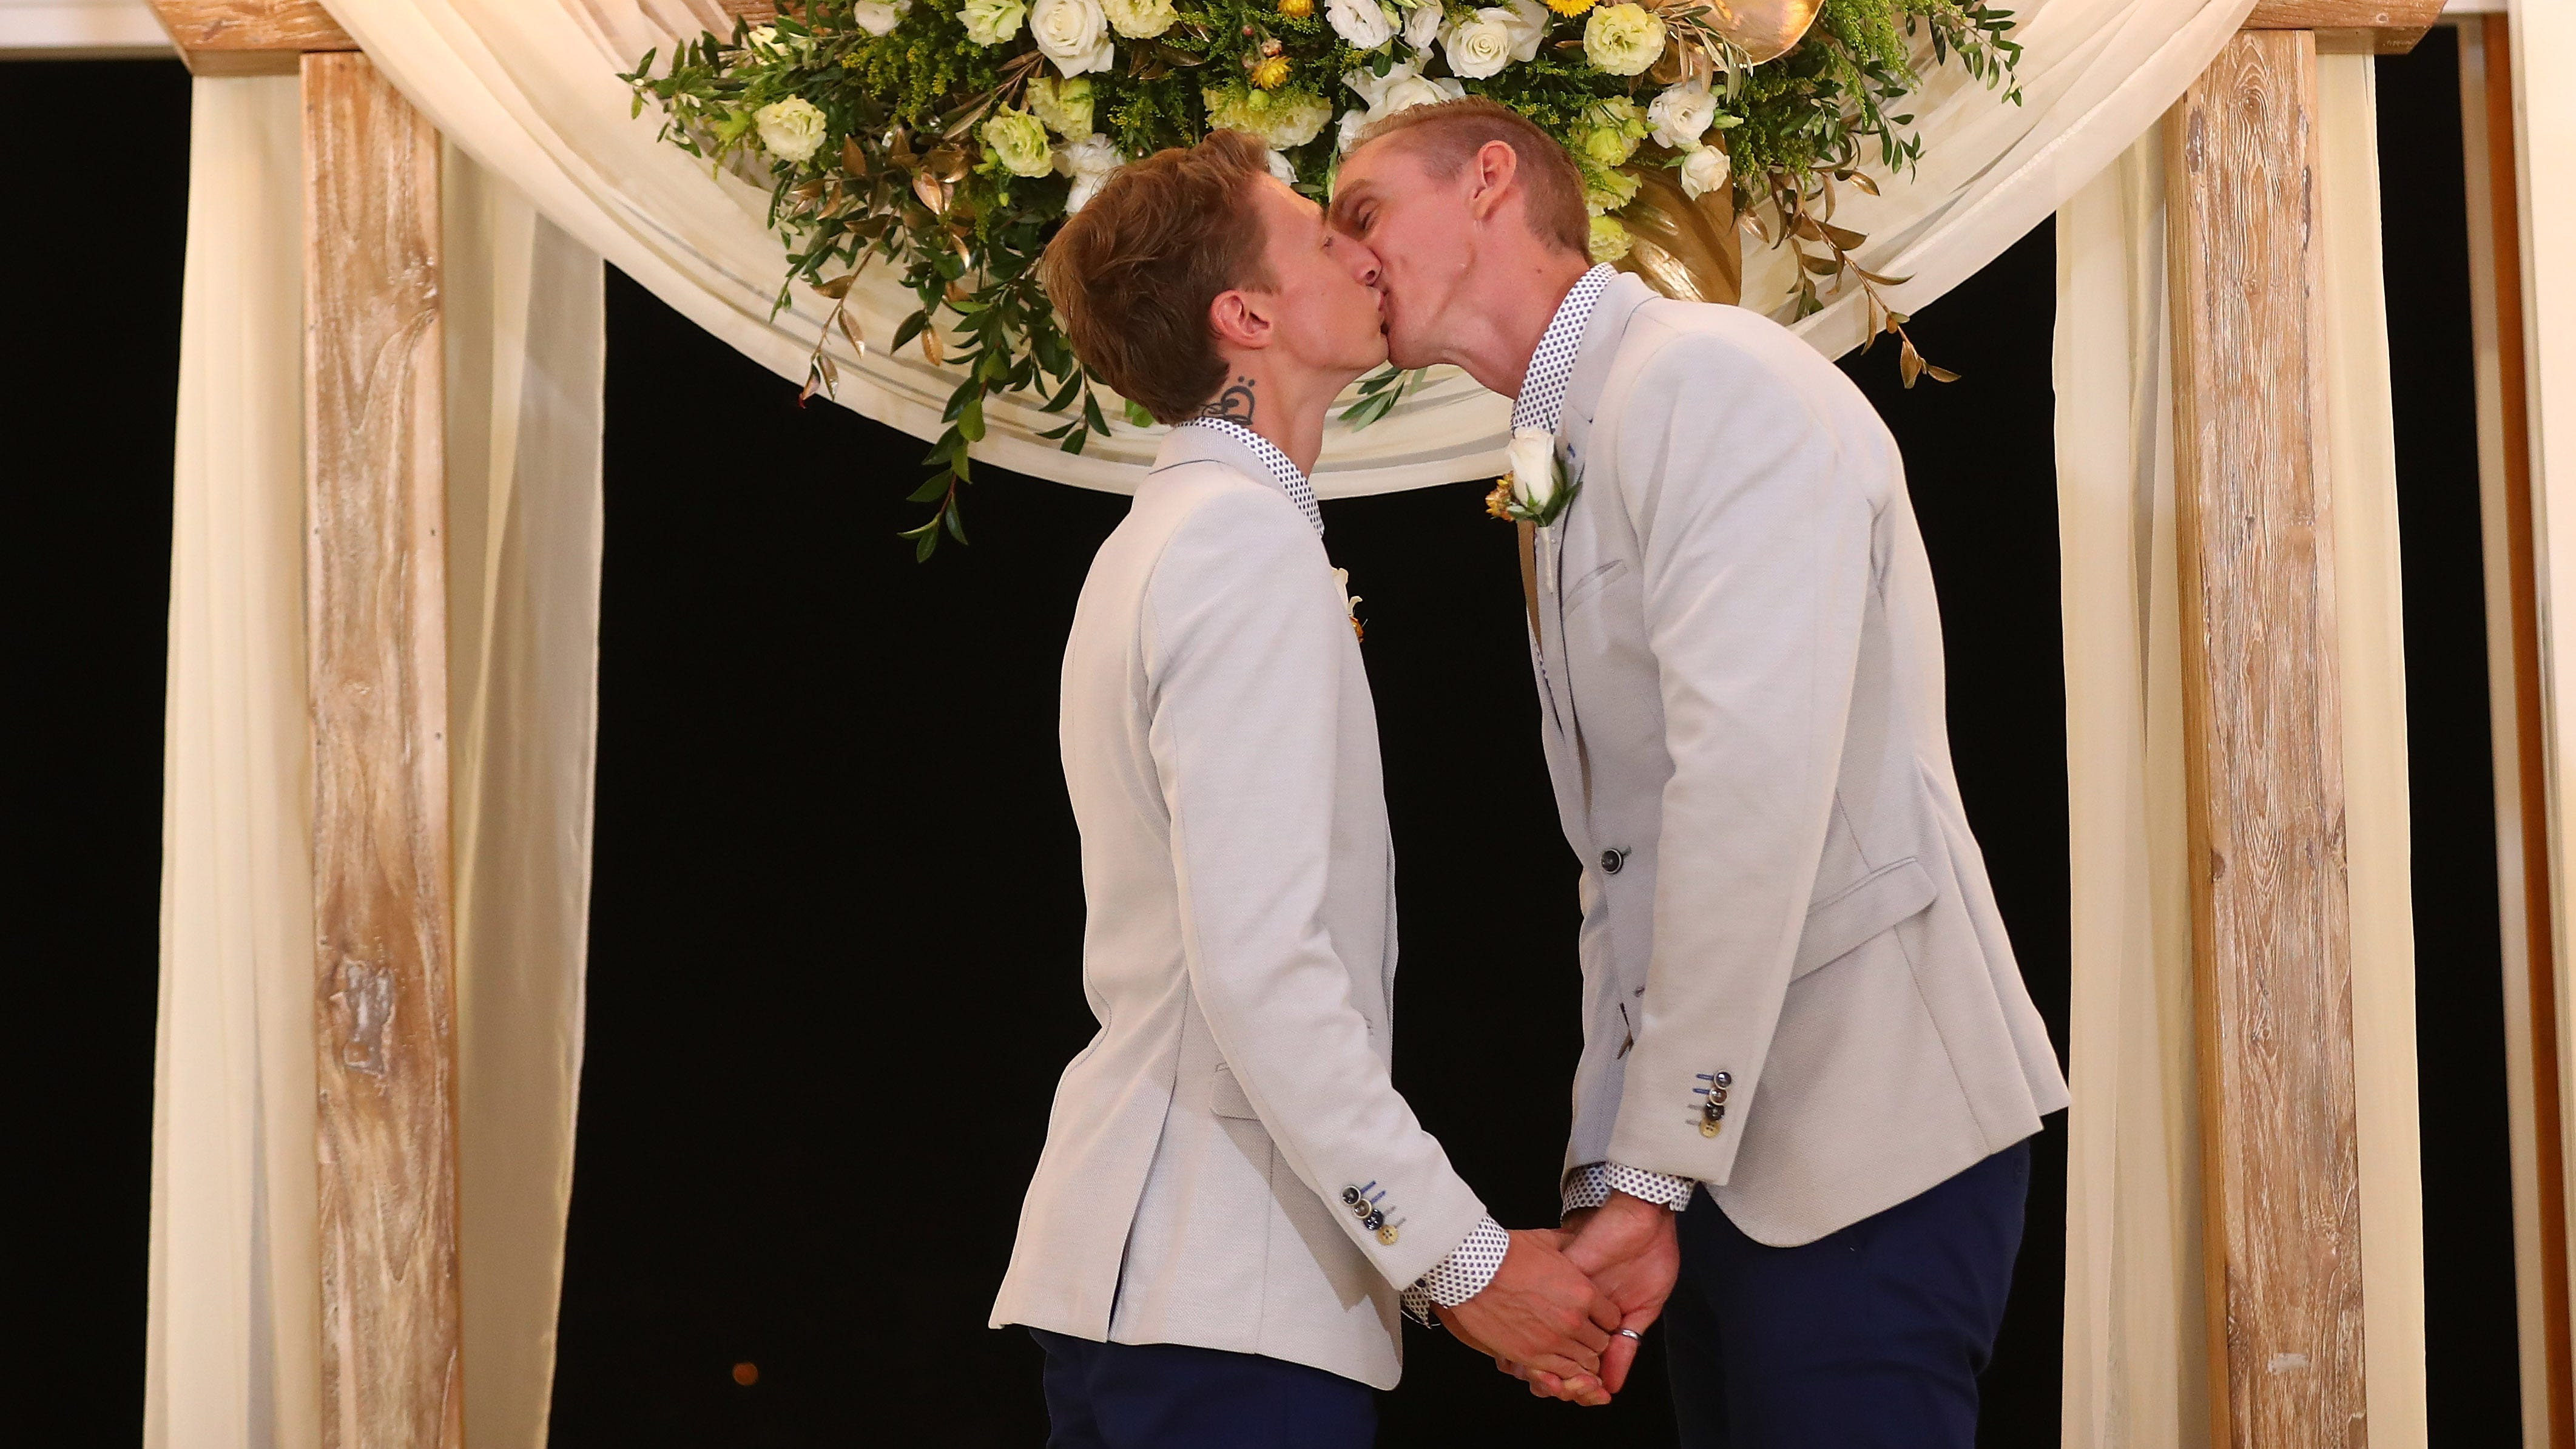 Woman acts as stand-in mom at same-sex weddings when biological parents don't show